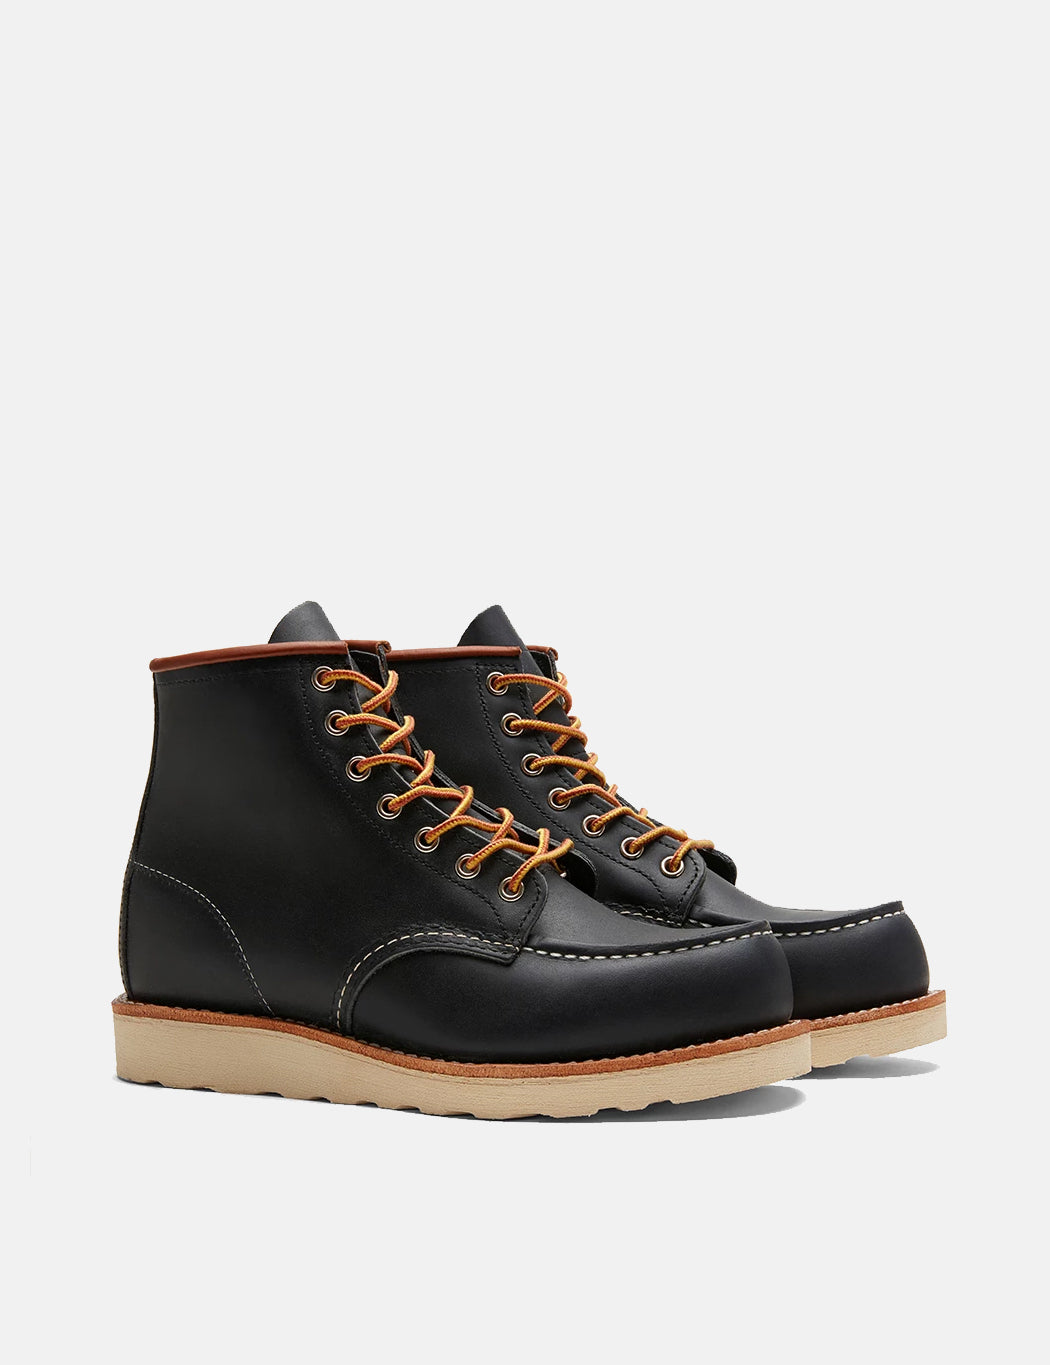 "Red Wing 6"" Moc Toe Work Boot (8859) - Navy Blue 